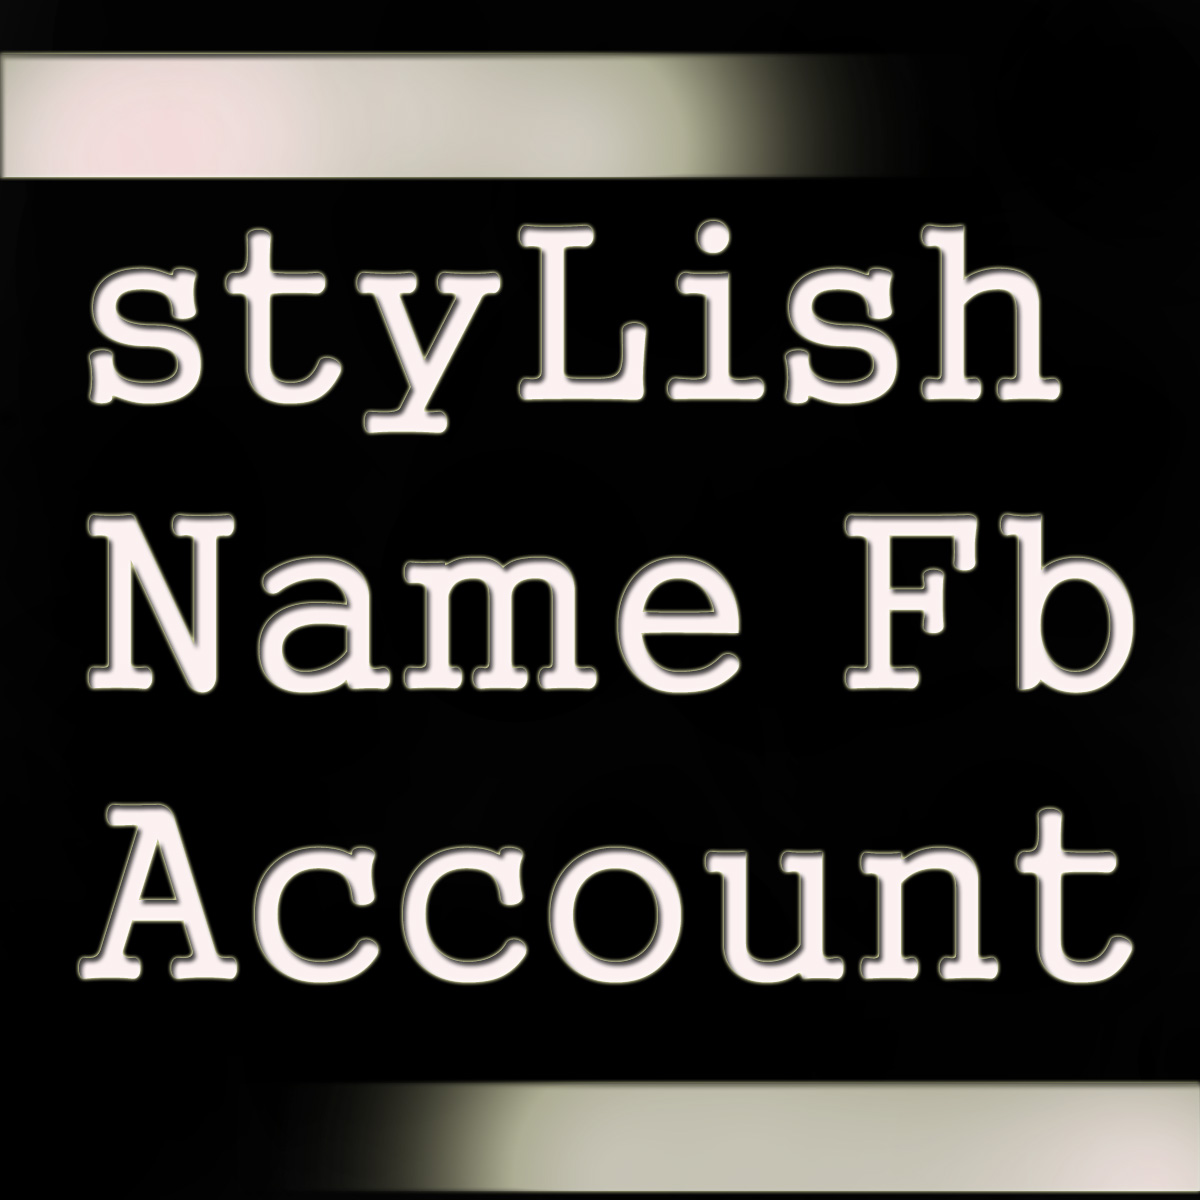 Unique tricks: HOW TO MAKE STYLISH NAME FB ACCOUNT